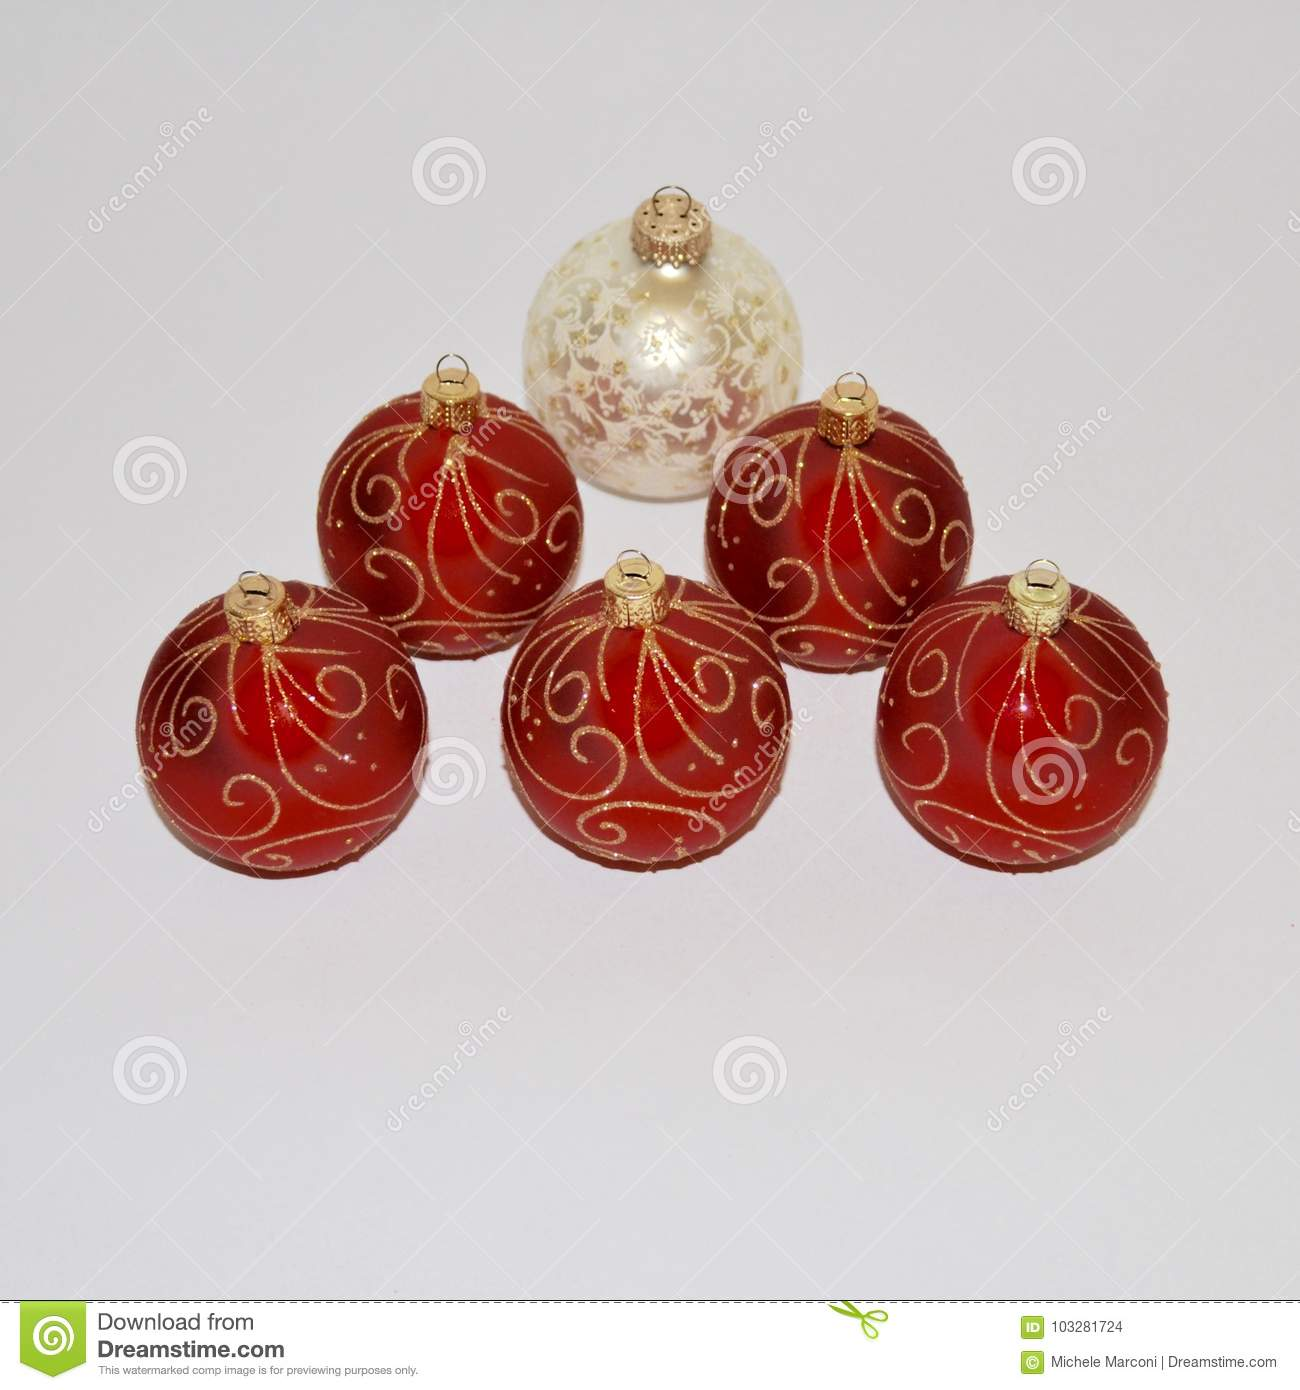 download christmas ornaments red and white christmas decorations stock photo image of ornament